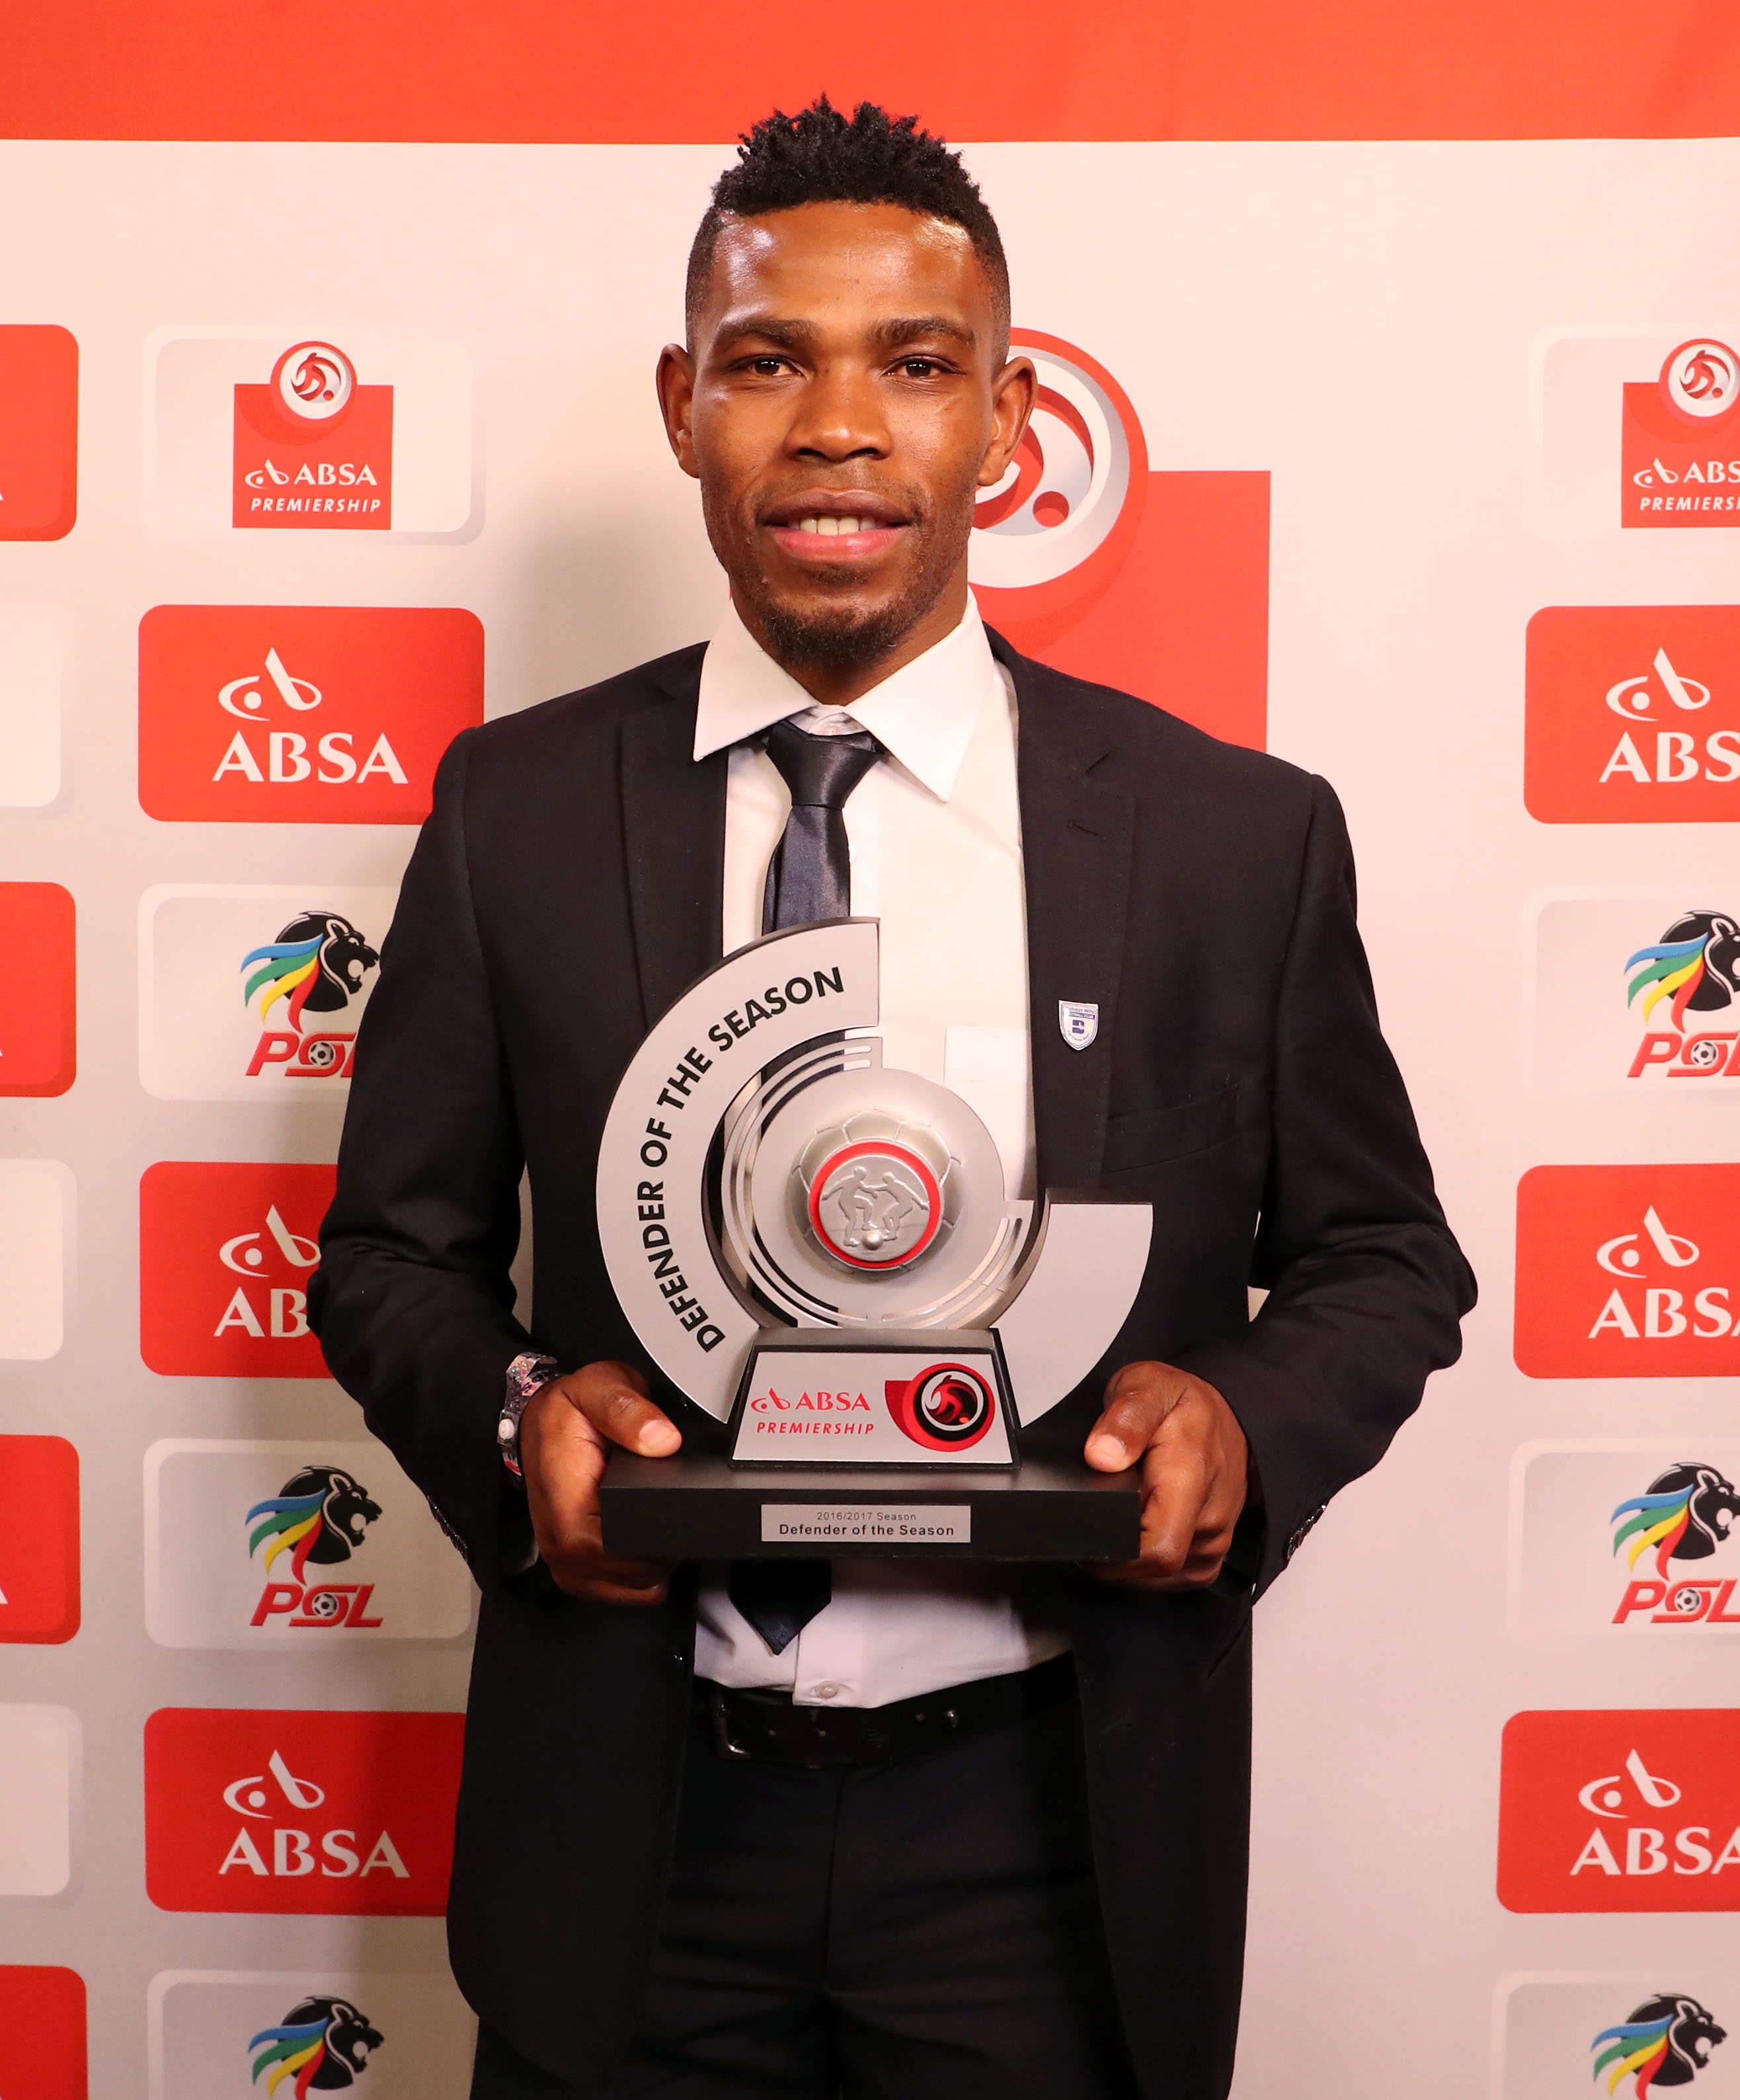 Absa Premiership Defender of the Season, Thulani Hlatshwayo of Bidvest Wits during the 2016/17 PSL Awards at the Sandton Convention Centre, Johannesburg South Africa on 10 July 2017 ©Muzi Ntombela/BackpagePix